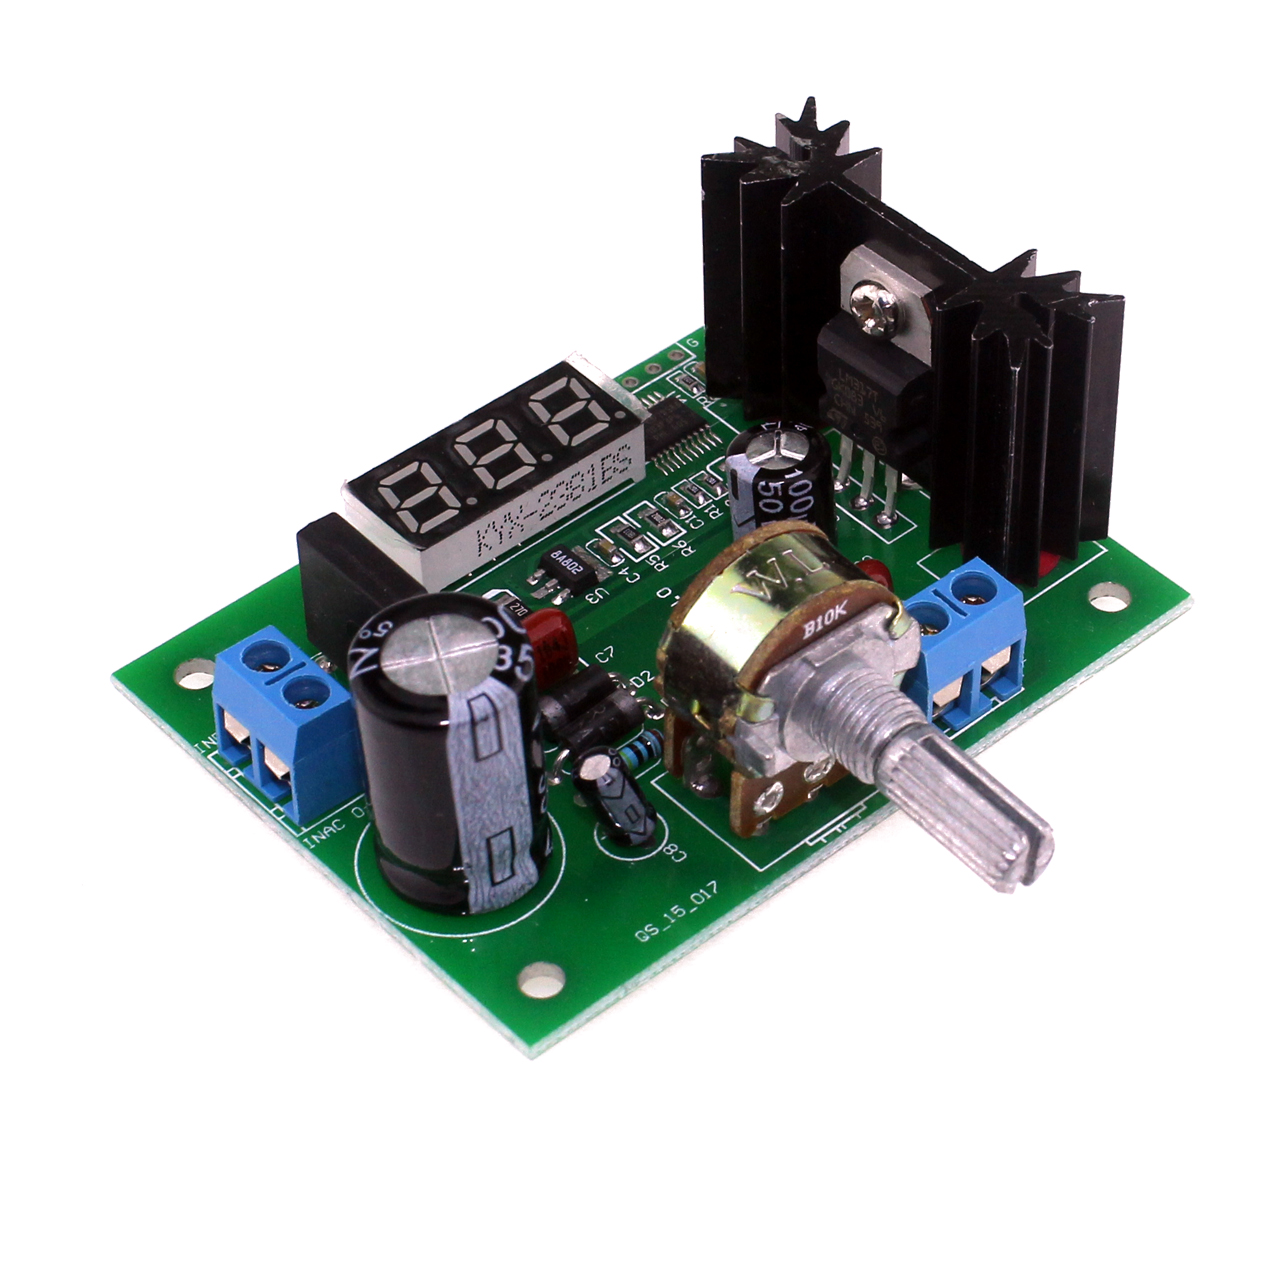 Lm317 Short Circuit Protection Voltage Regulator 25 Pcsneweggcom Ac Dc Switching Power Supply Board 110v 220v To 24v 6a Continuously Adjustable Step Down Module With Led Display 125v 28v